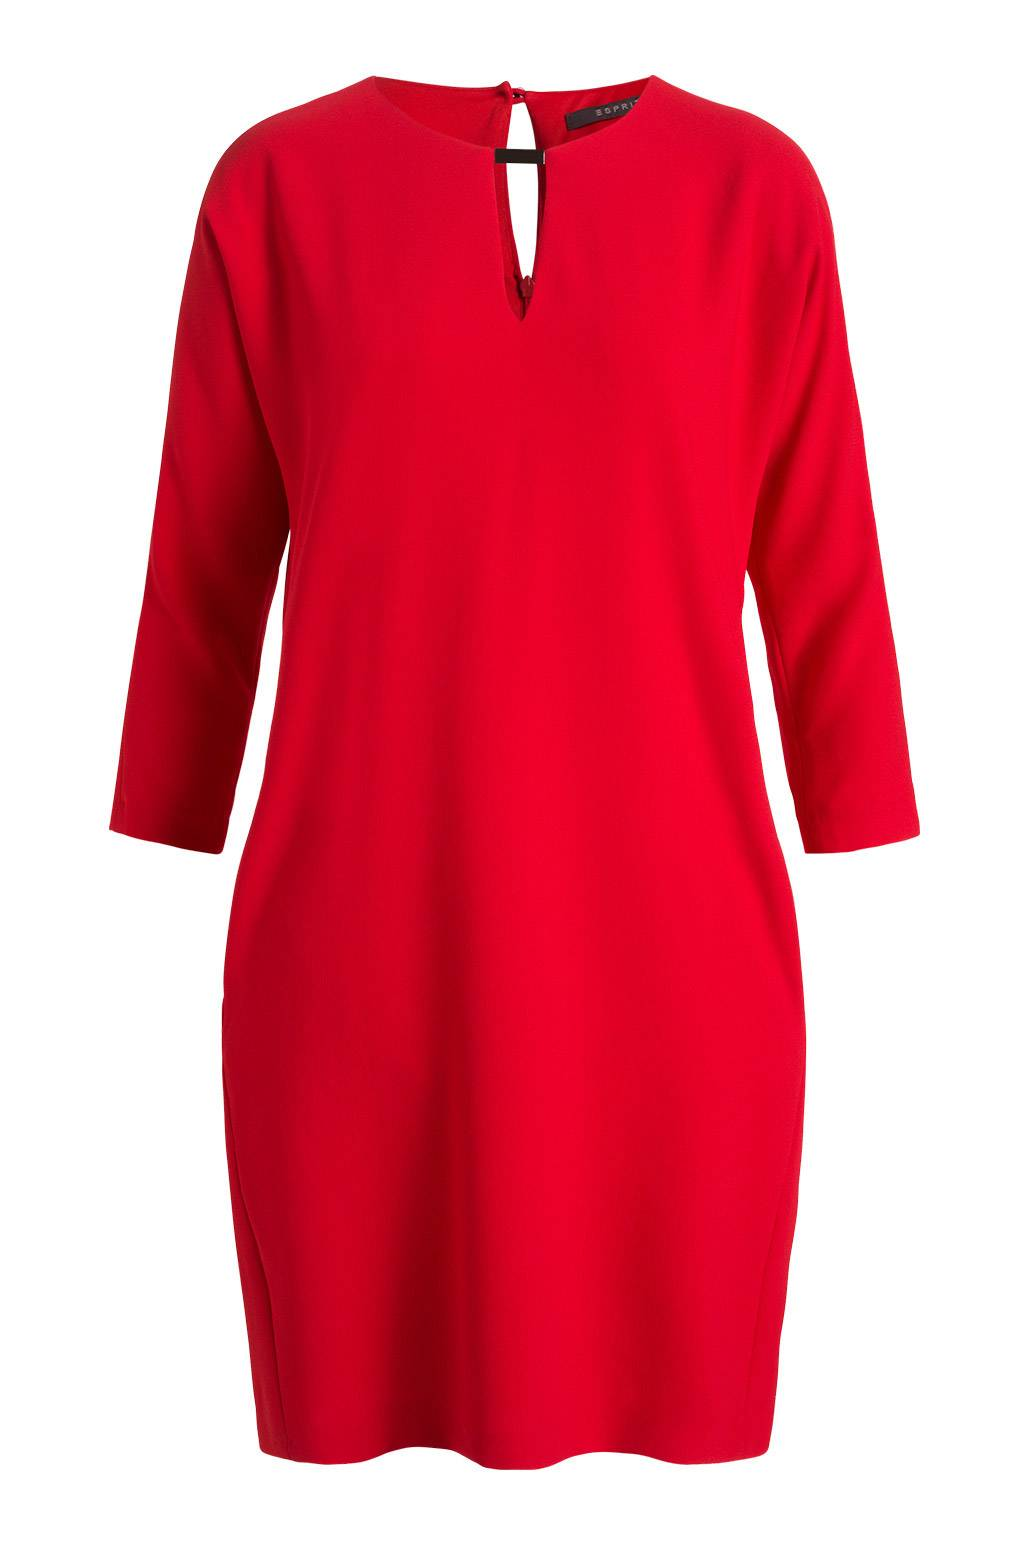 esprit red dress